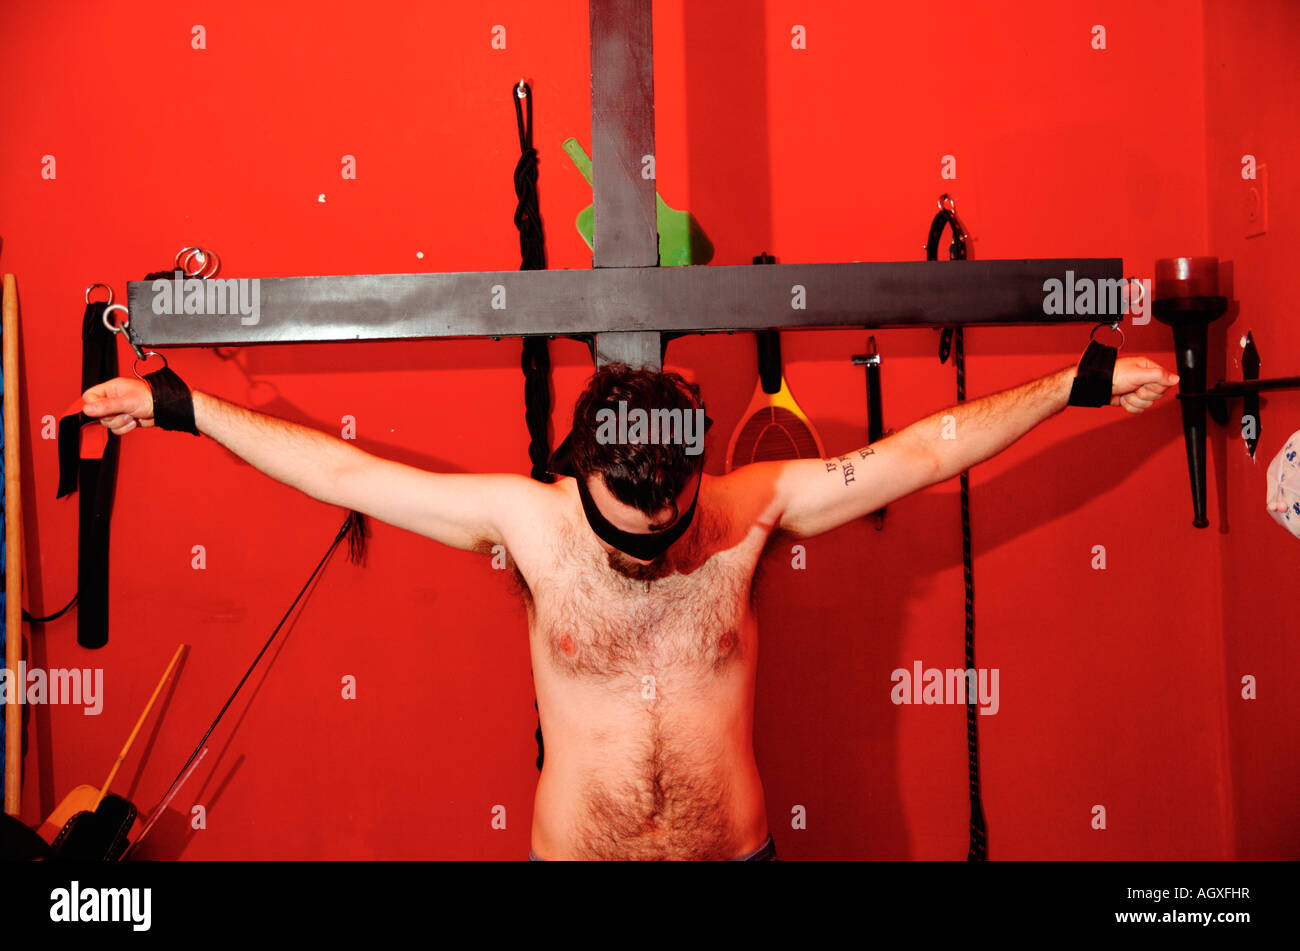 Bdsm Dungeon crucified blindfolded young man in a bdsm dungeon stock